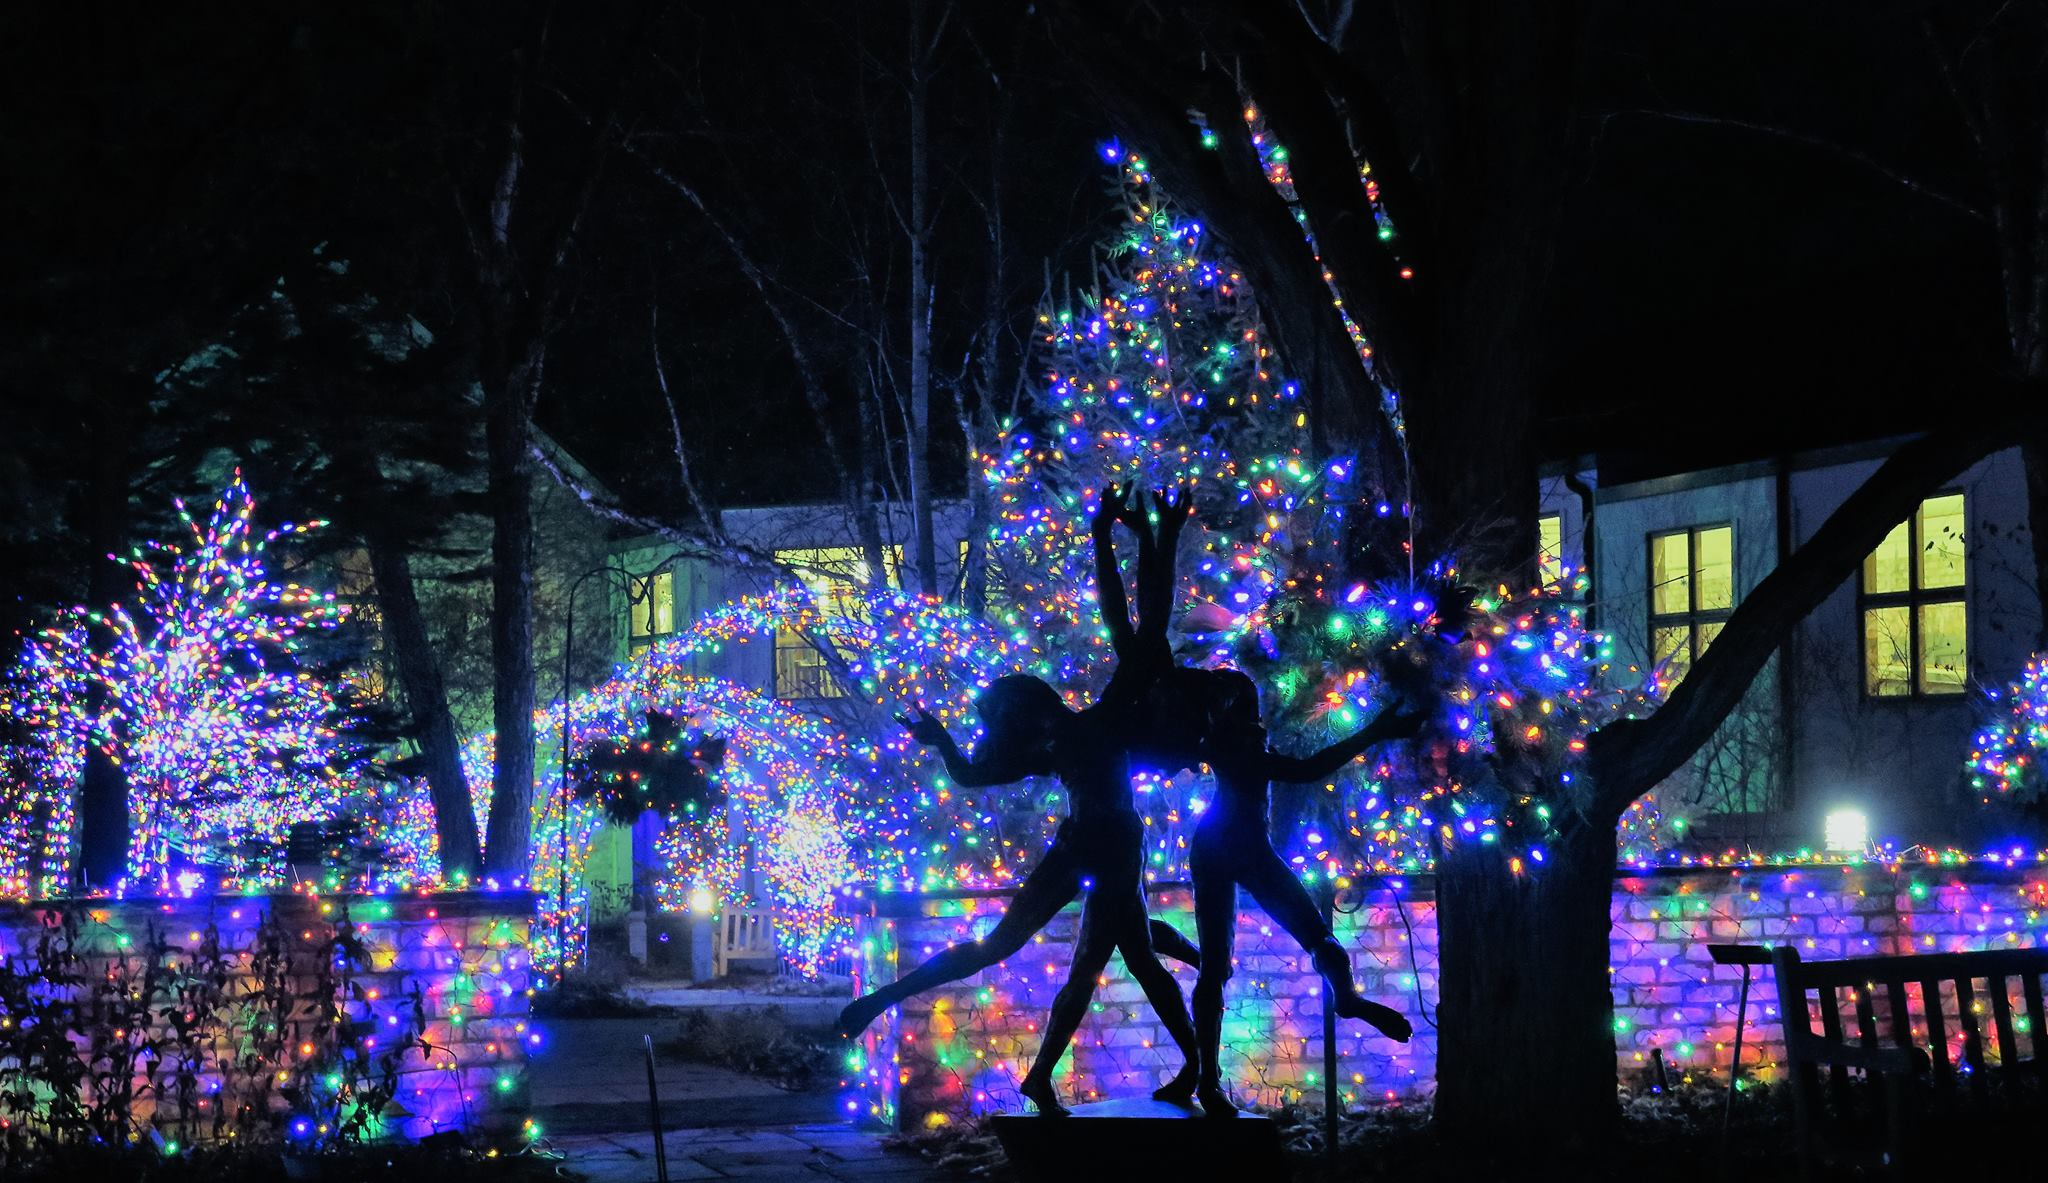 Great We Love To Find Holiday Light Displays This Time Of Year. I Just Discovered  One To Add To The List, The Arboretum After Hours Holiday Lights Display.